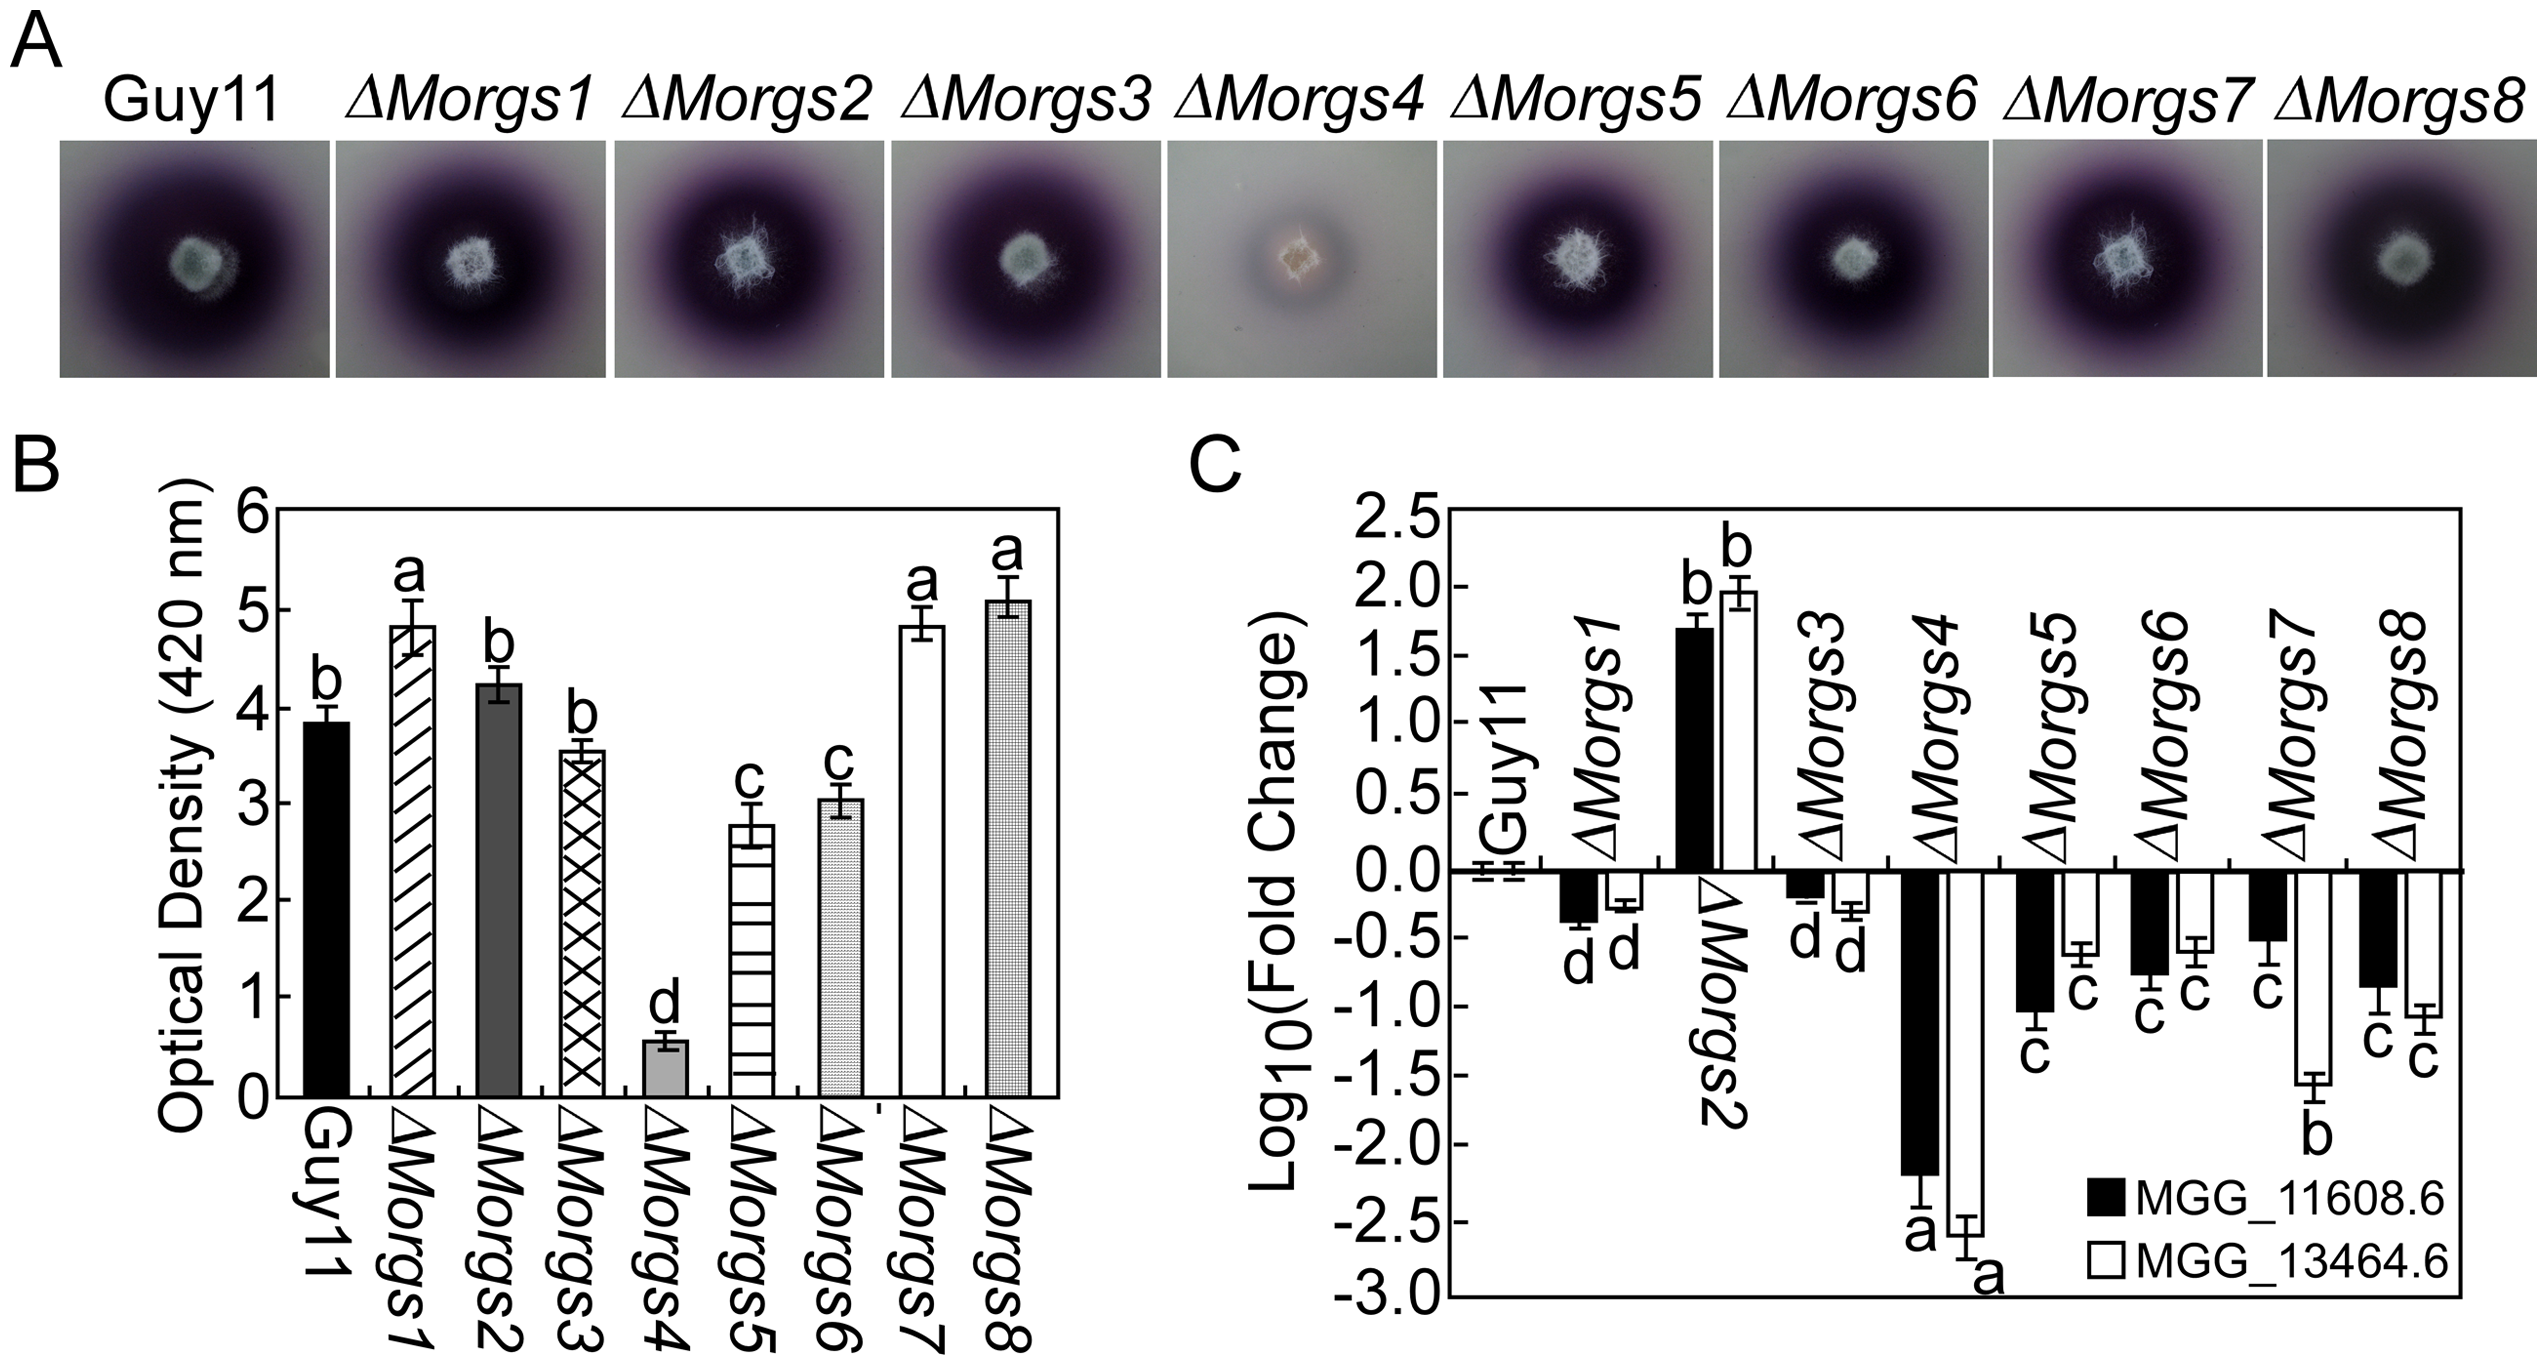 MoRgs4 has a role in the regulation of extracellular laccase activities.